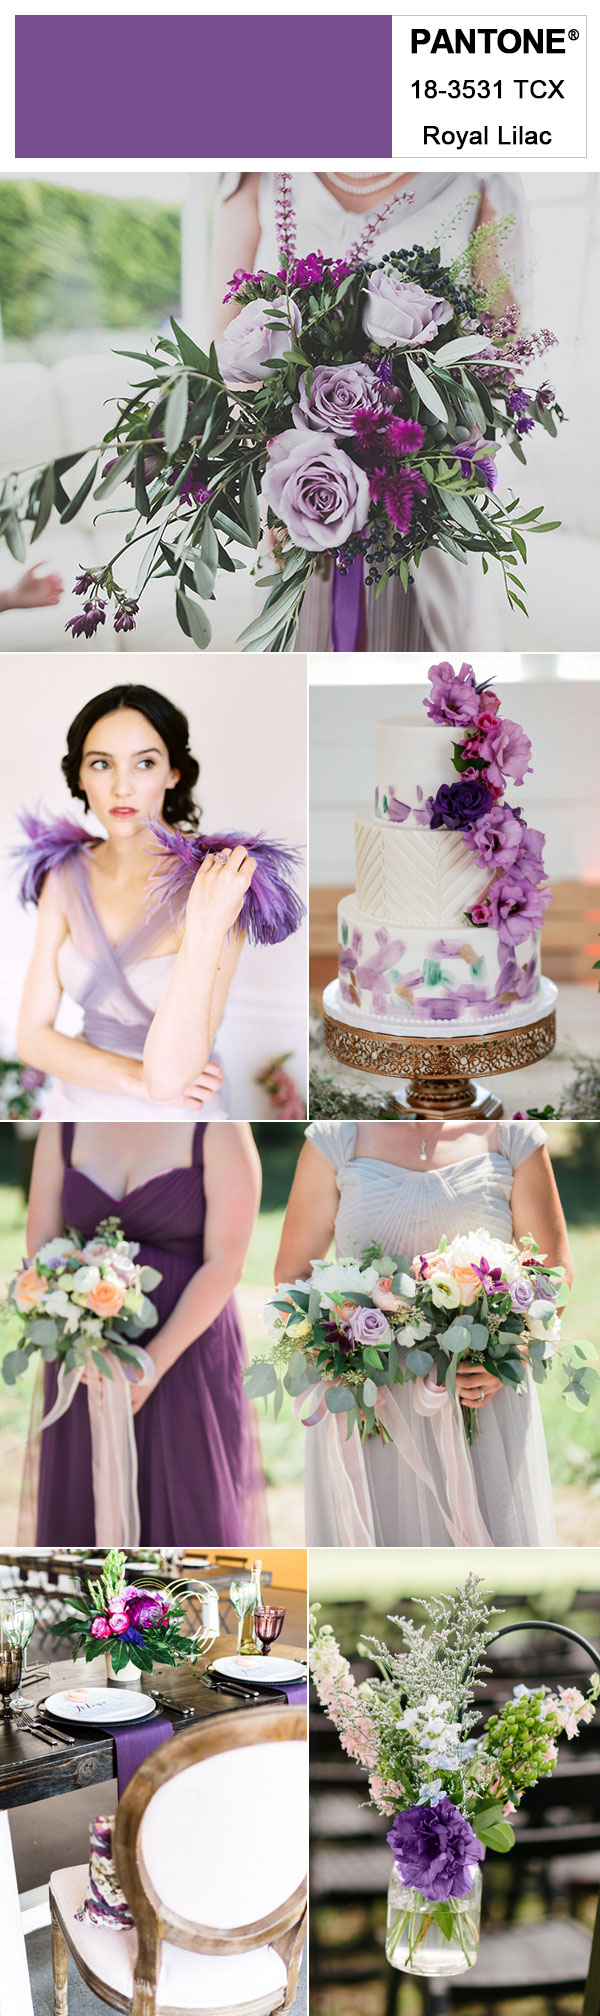 Pantone Royal Lilac Enchanting Purple Wedding Inspiration